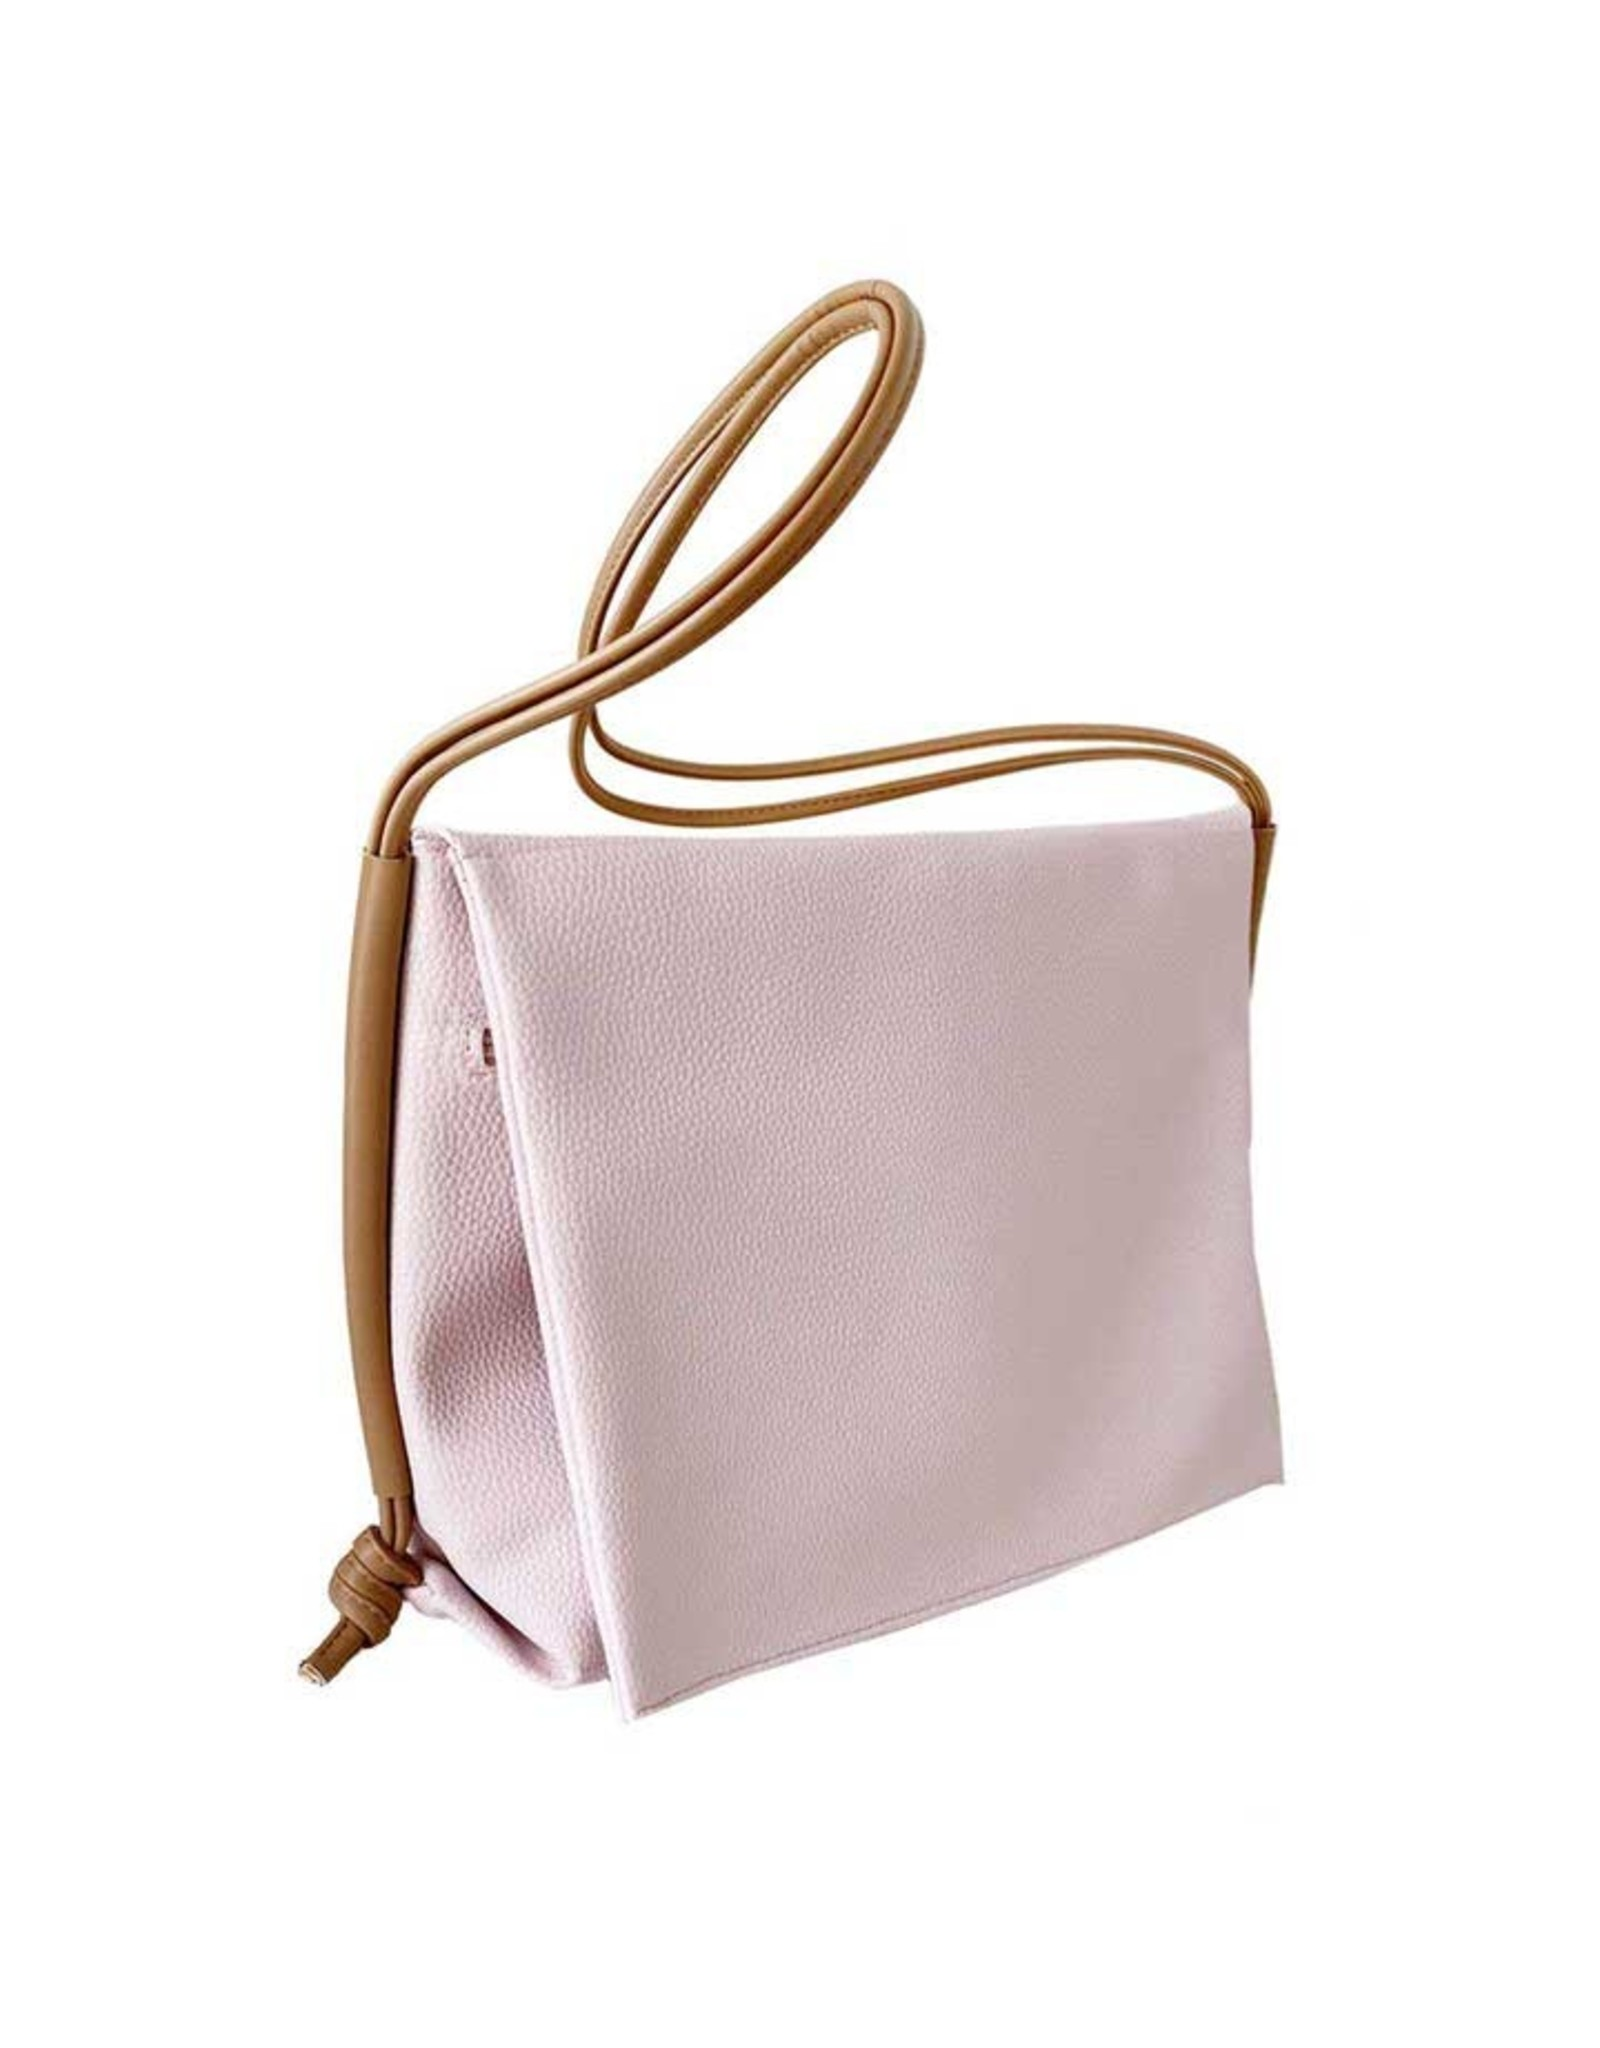 Caracol Caracol Laptop/Tablet Purse 7062 (S1)